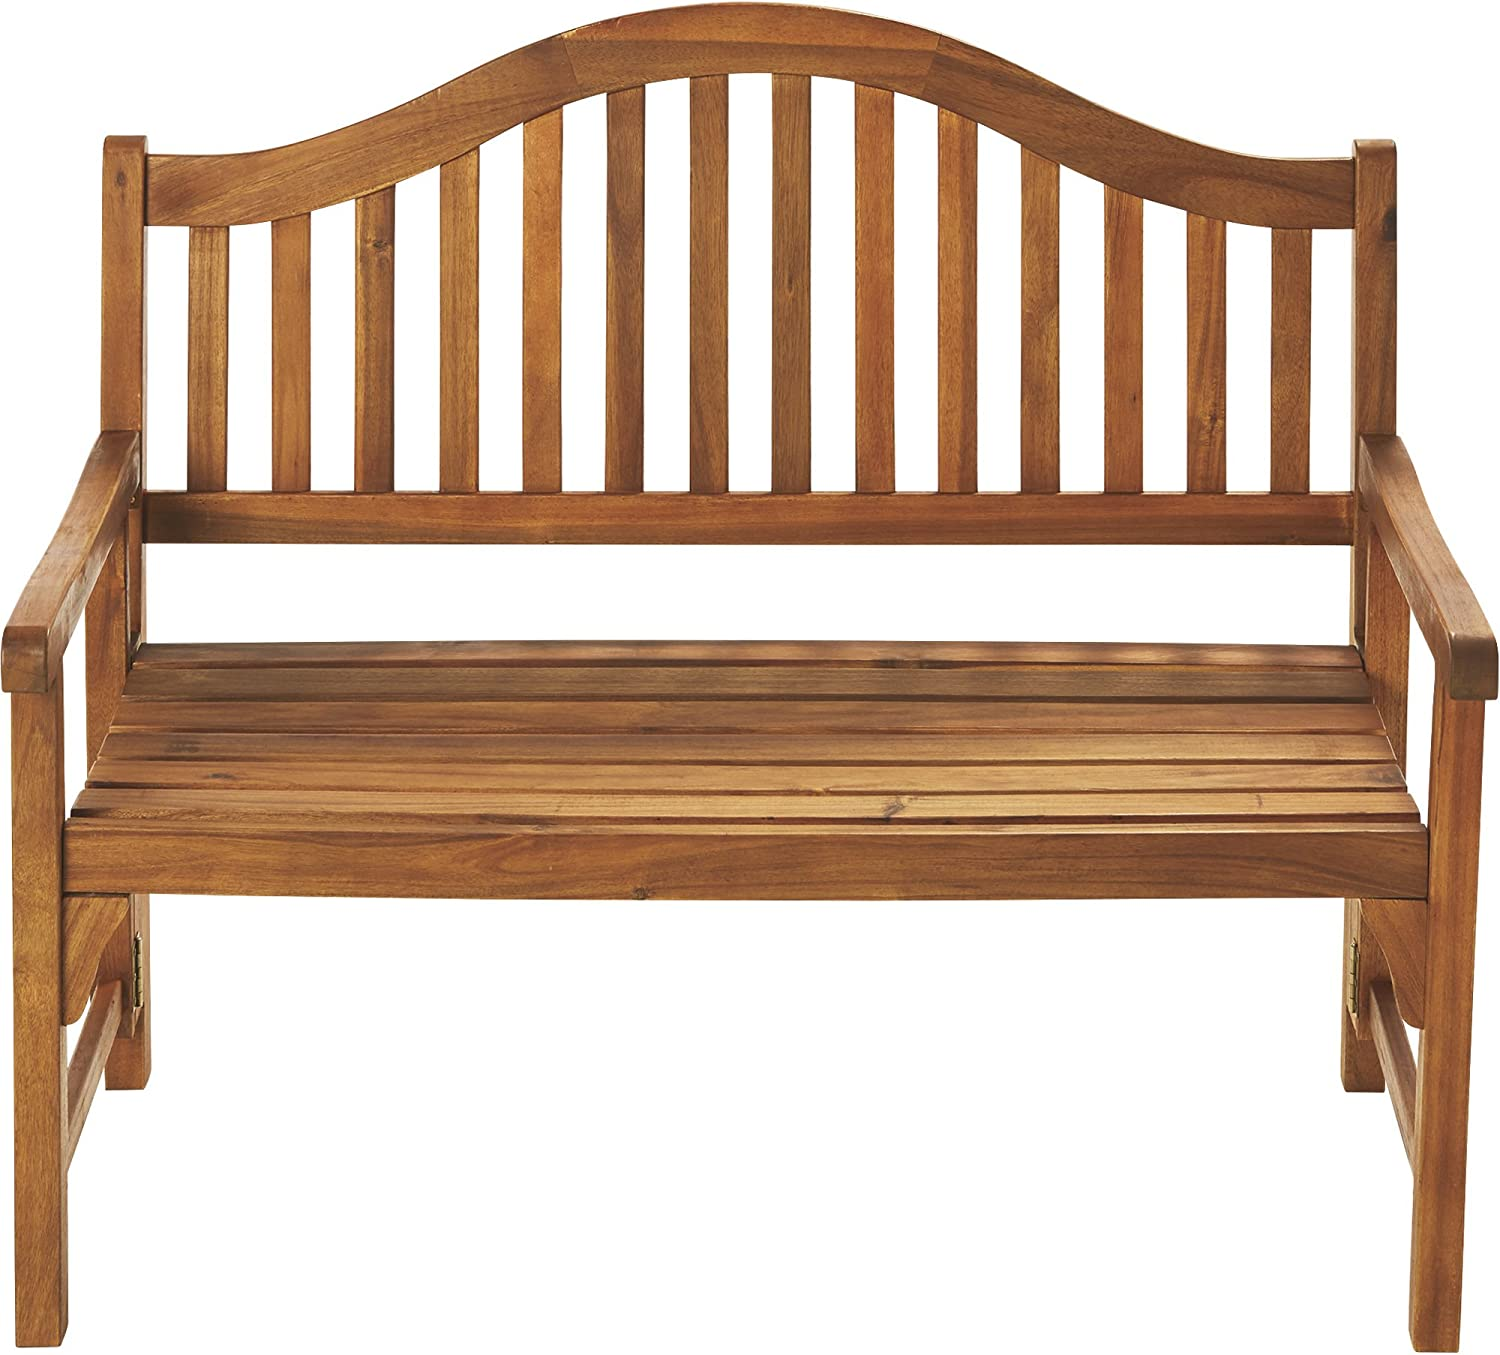 Patio Wise PWFN-030 Classic Folding Bench